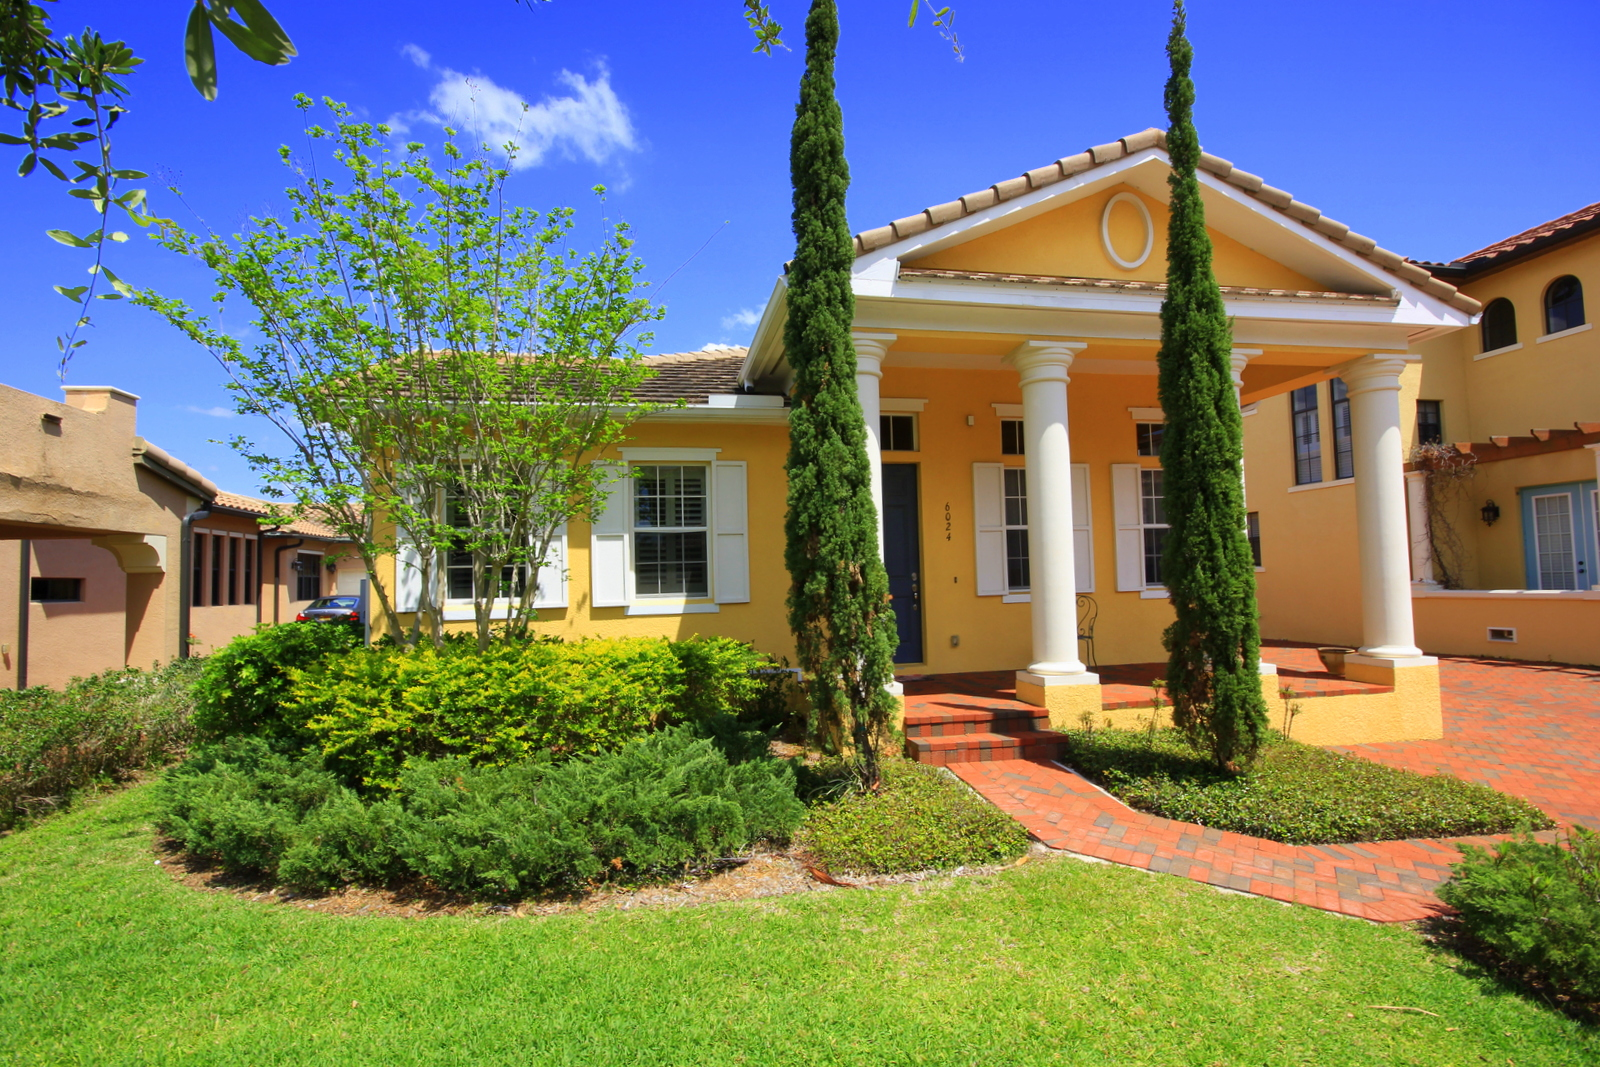 houses for rent in clearwater fl on craigslist